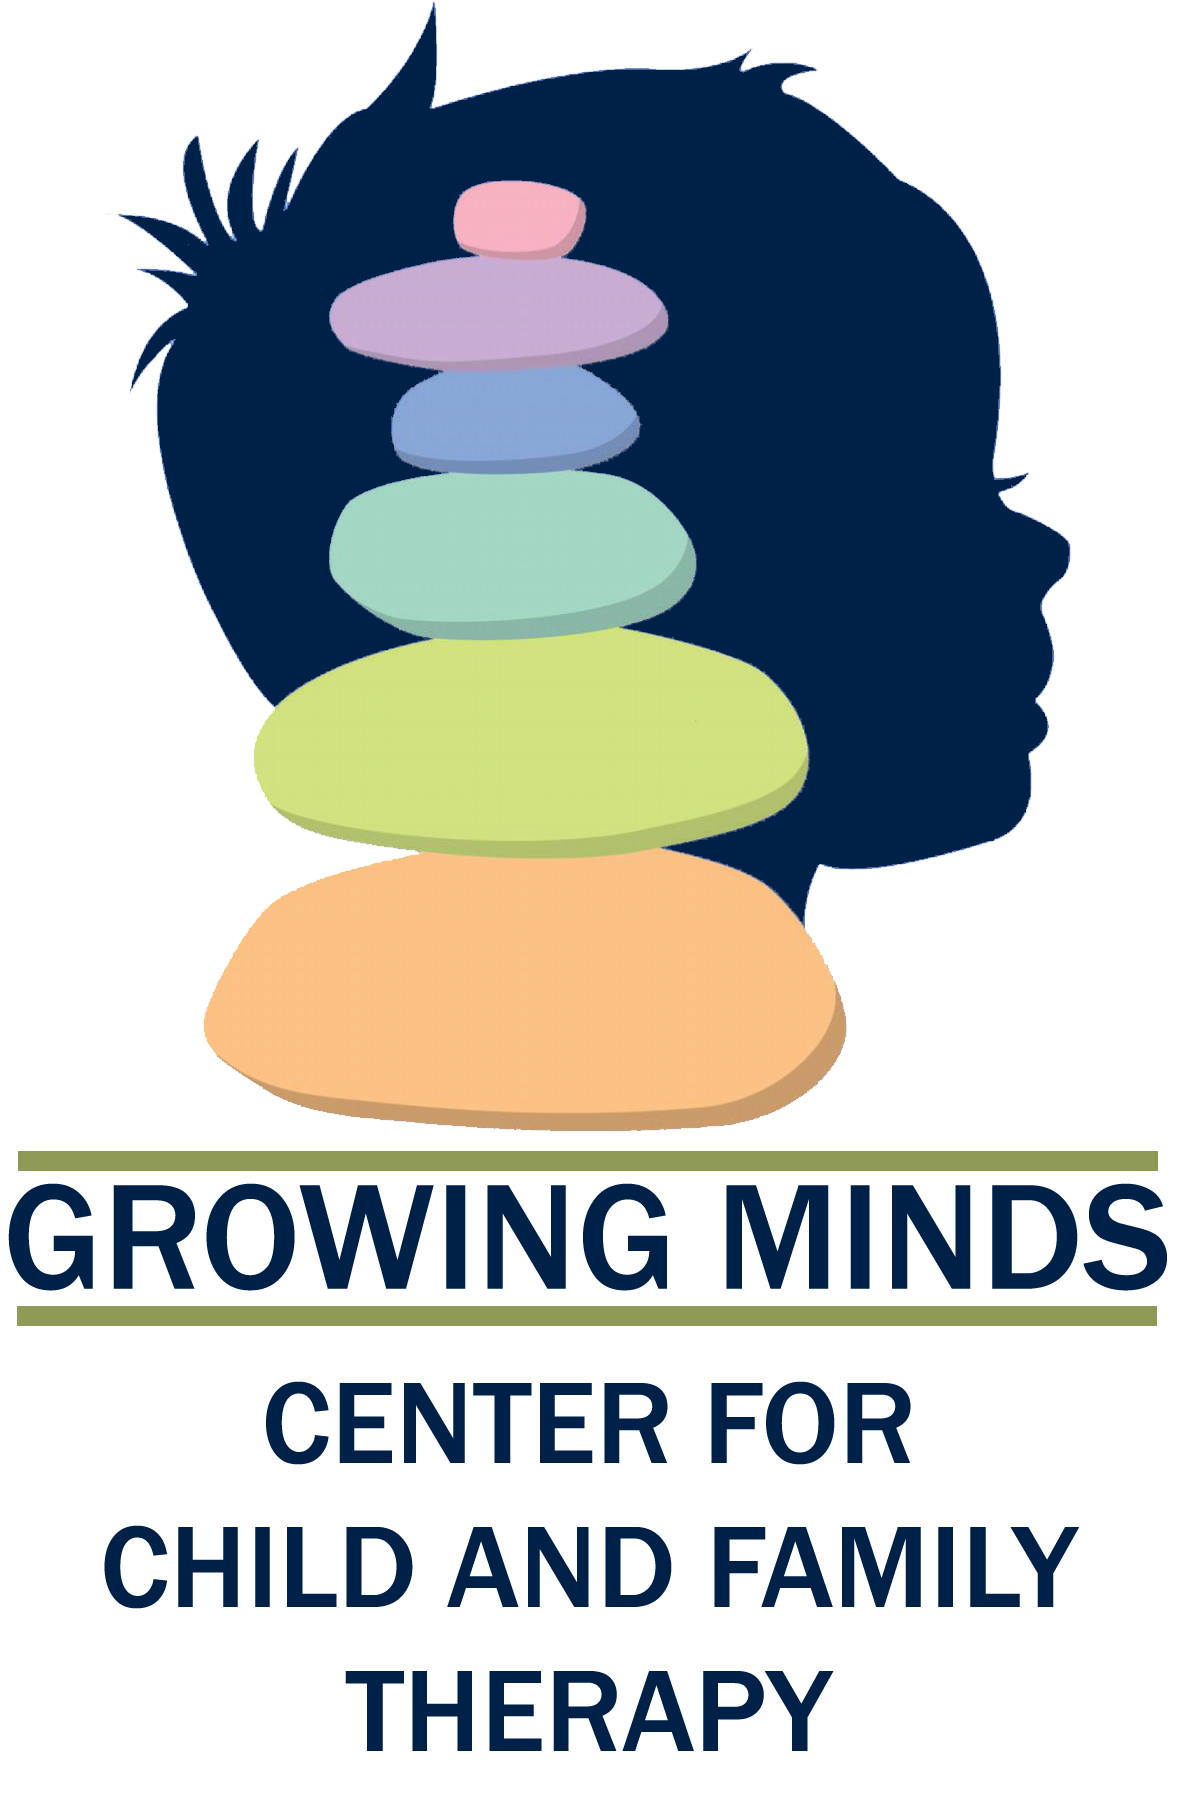 Psychology clipart psychoeducation. Therapists growing minds therapy